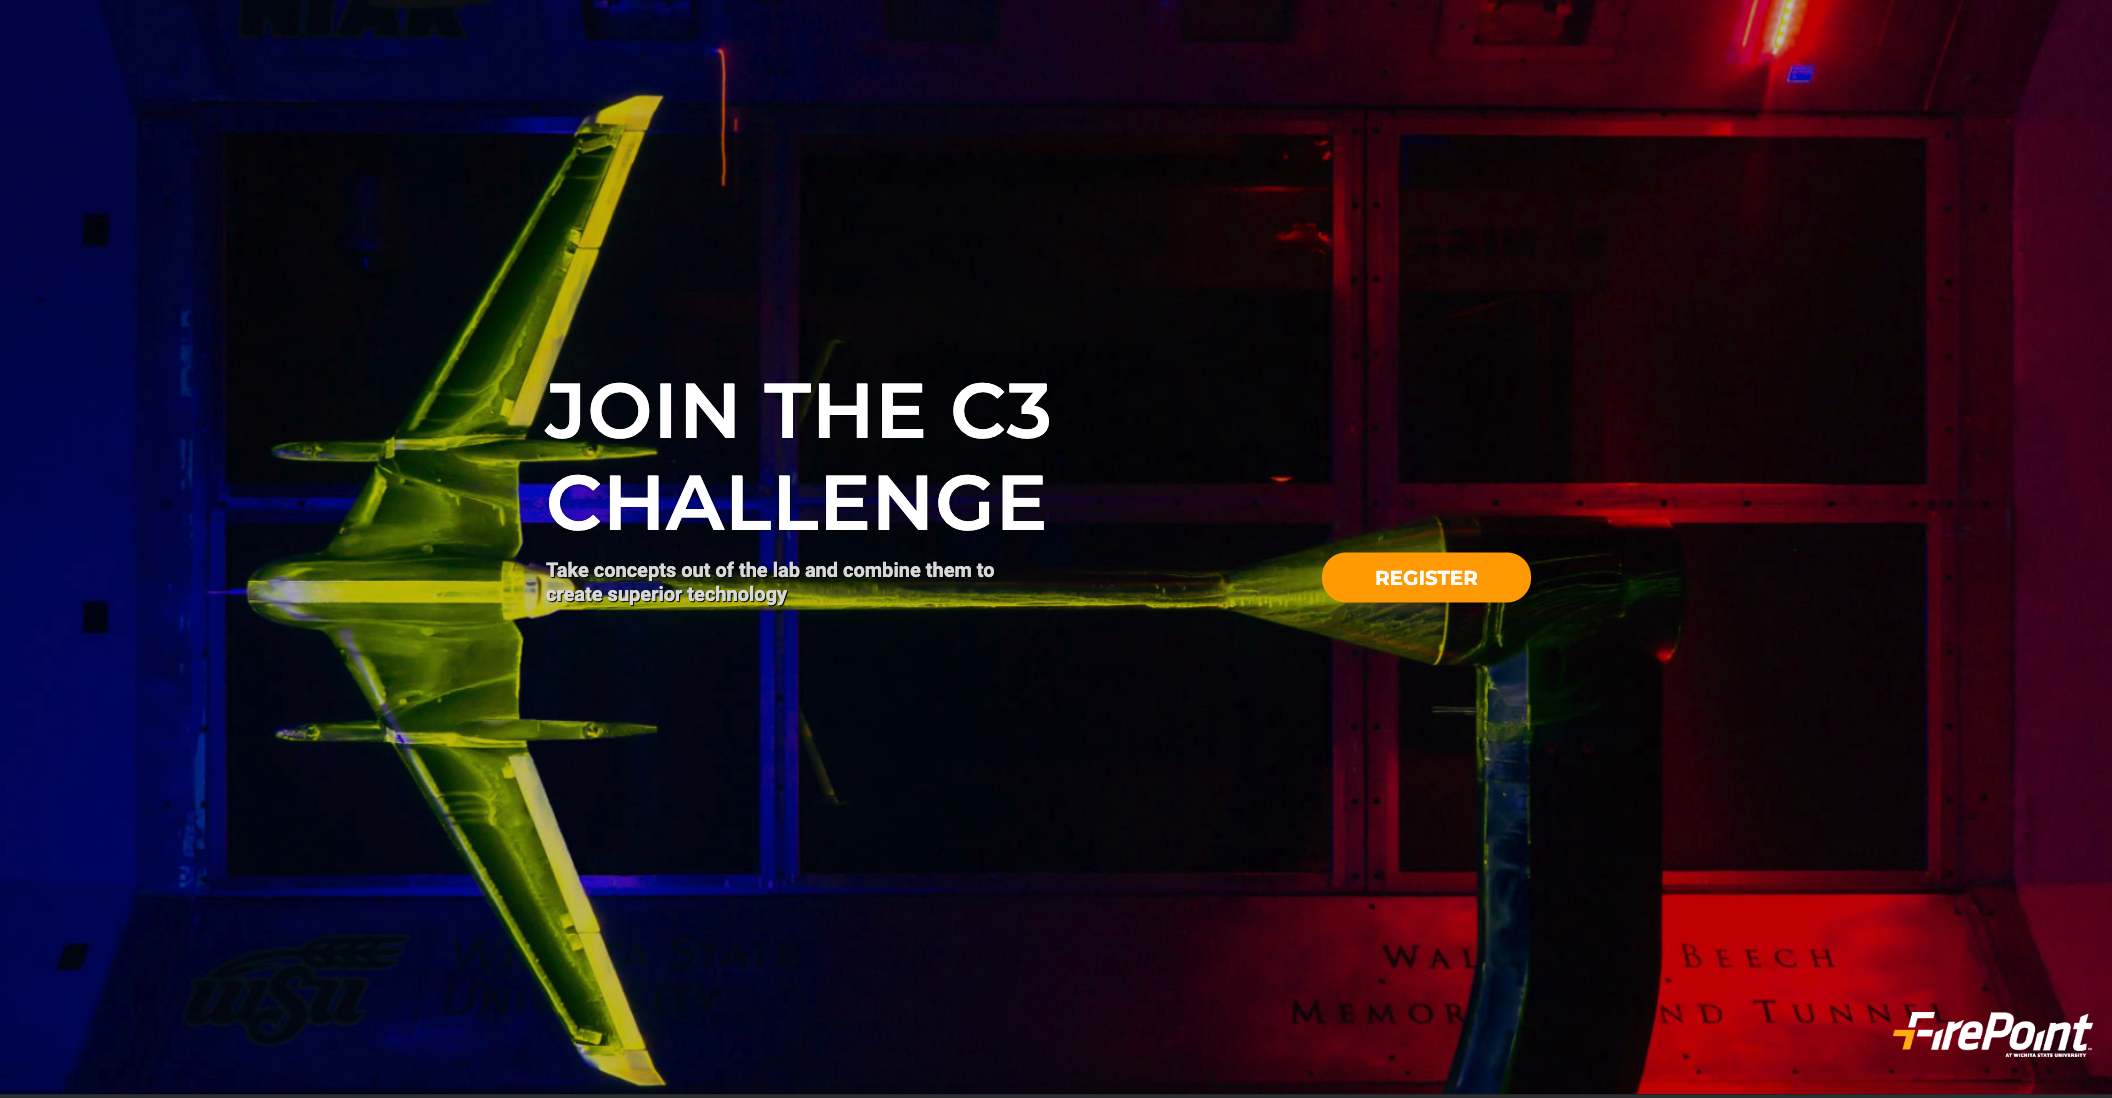 C3 Competition - FirePoint's national competition to demonstrate next-generation UAS technology through creation, collaboration and convergence among university teams.